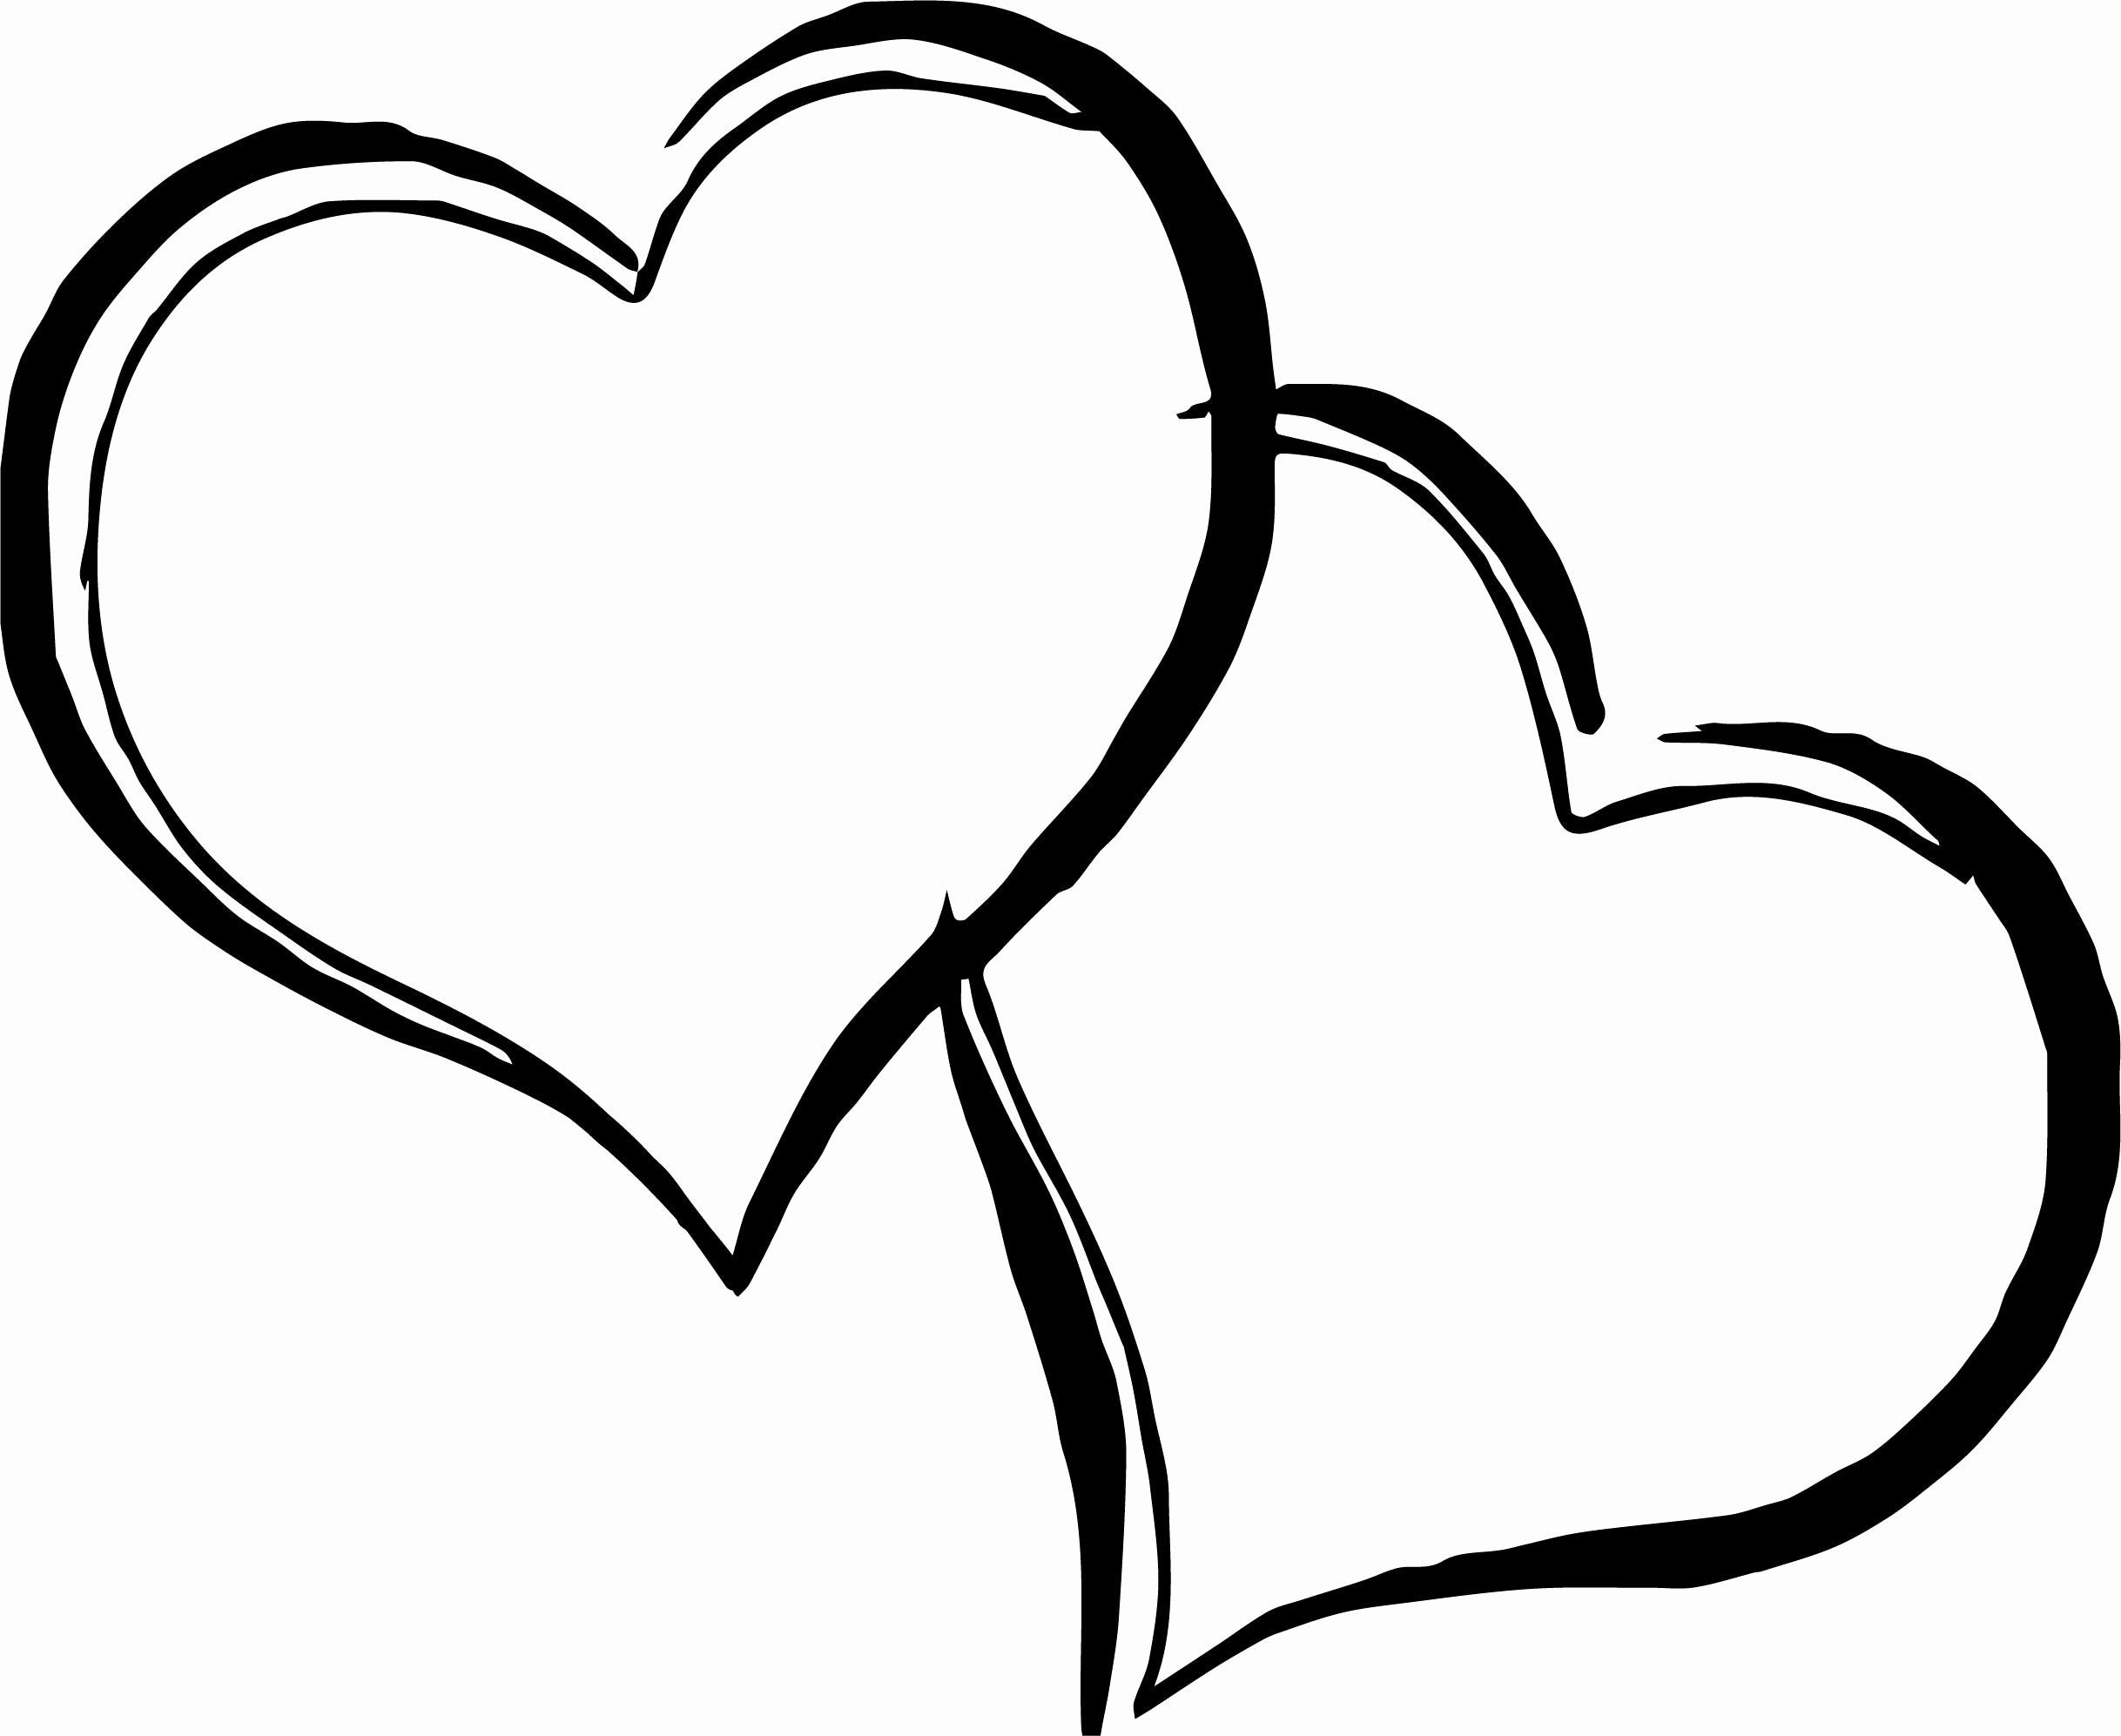 pictures of hearts to color coloring cartoon hearts in 2020 heart coloring pages color of to pictures hearts